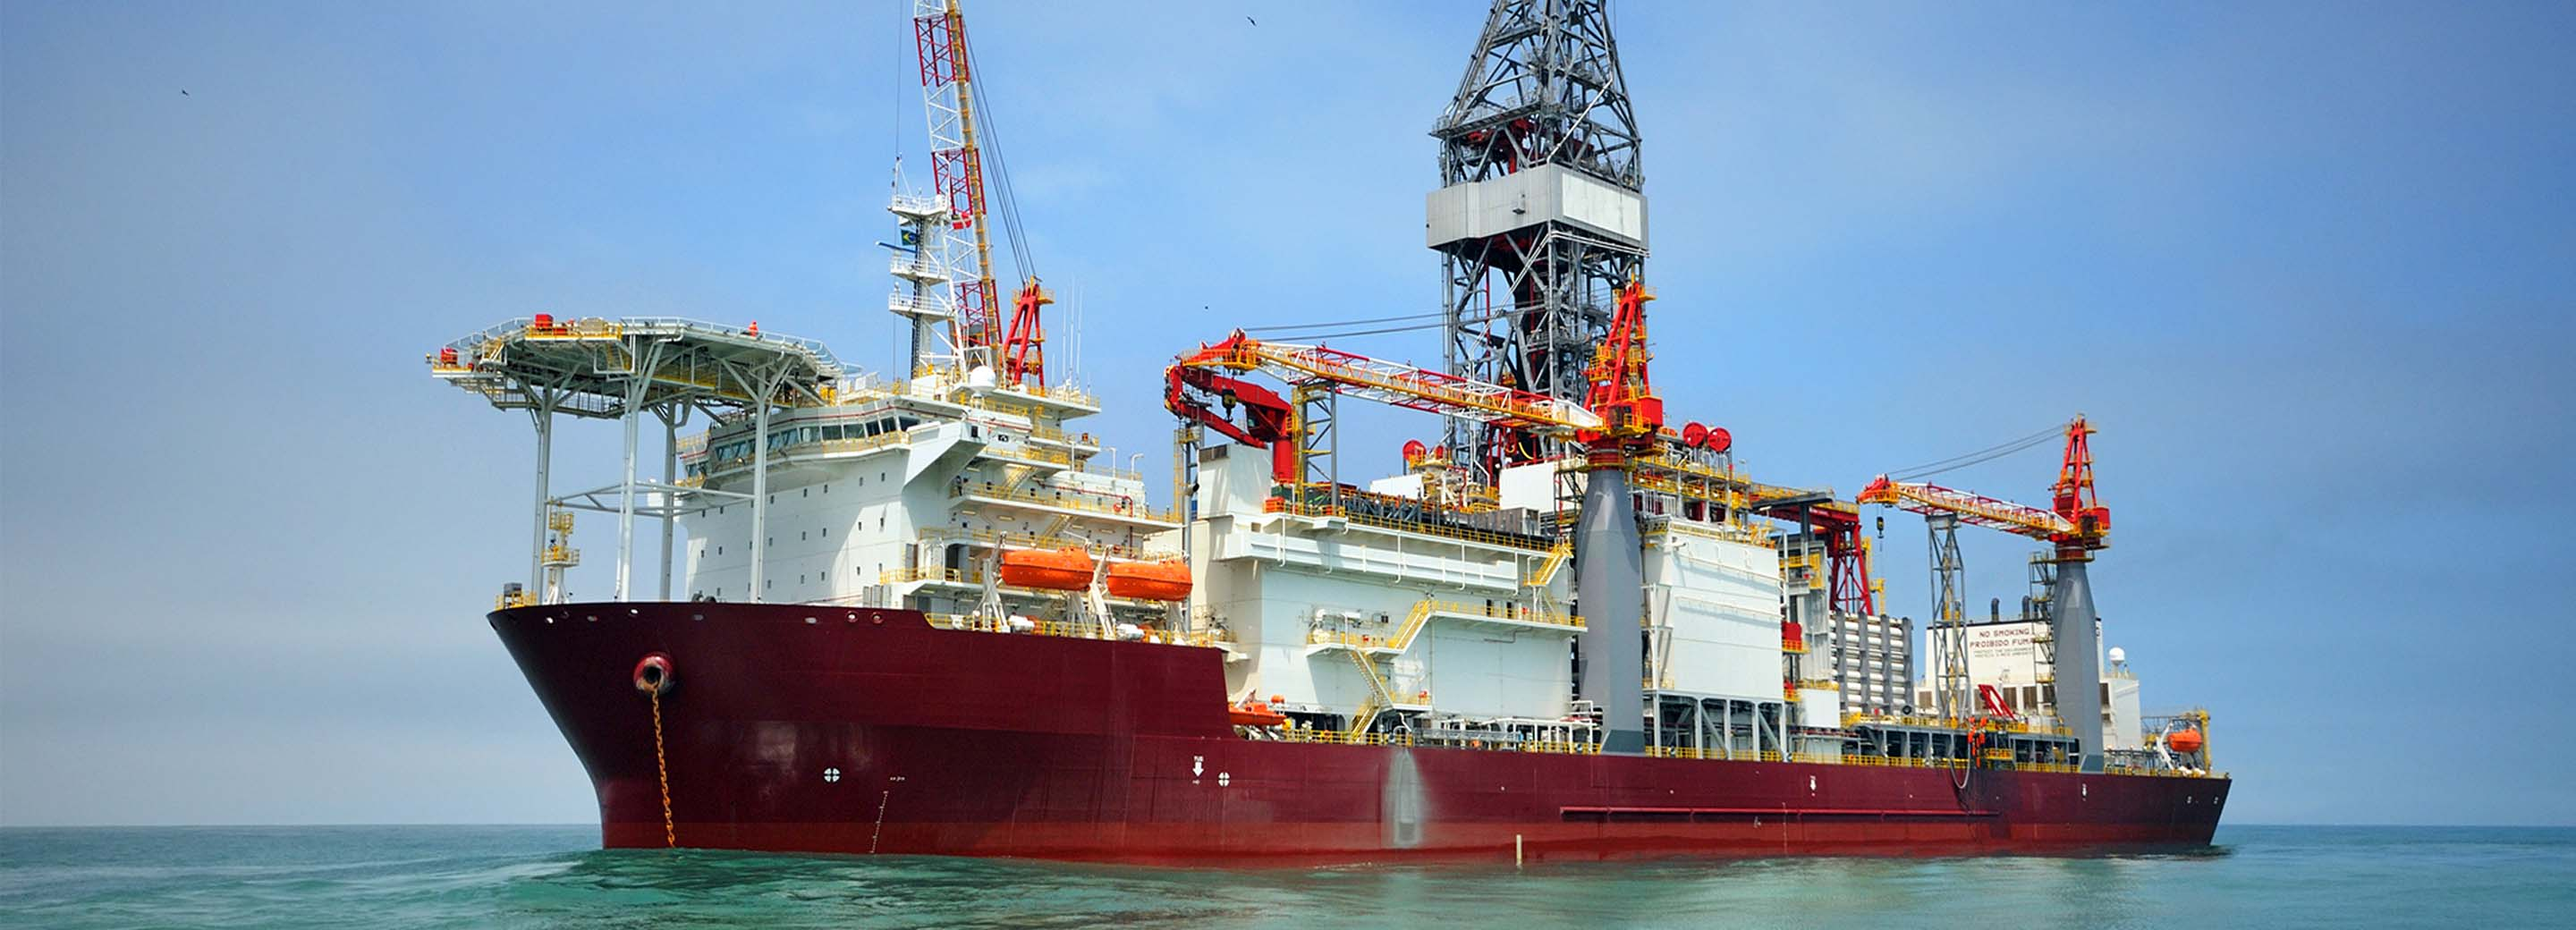 Offshore oil drilling ship.